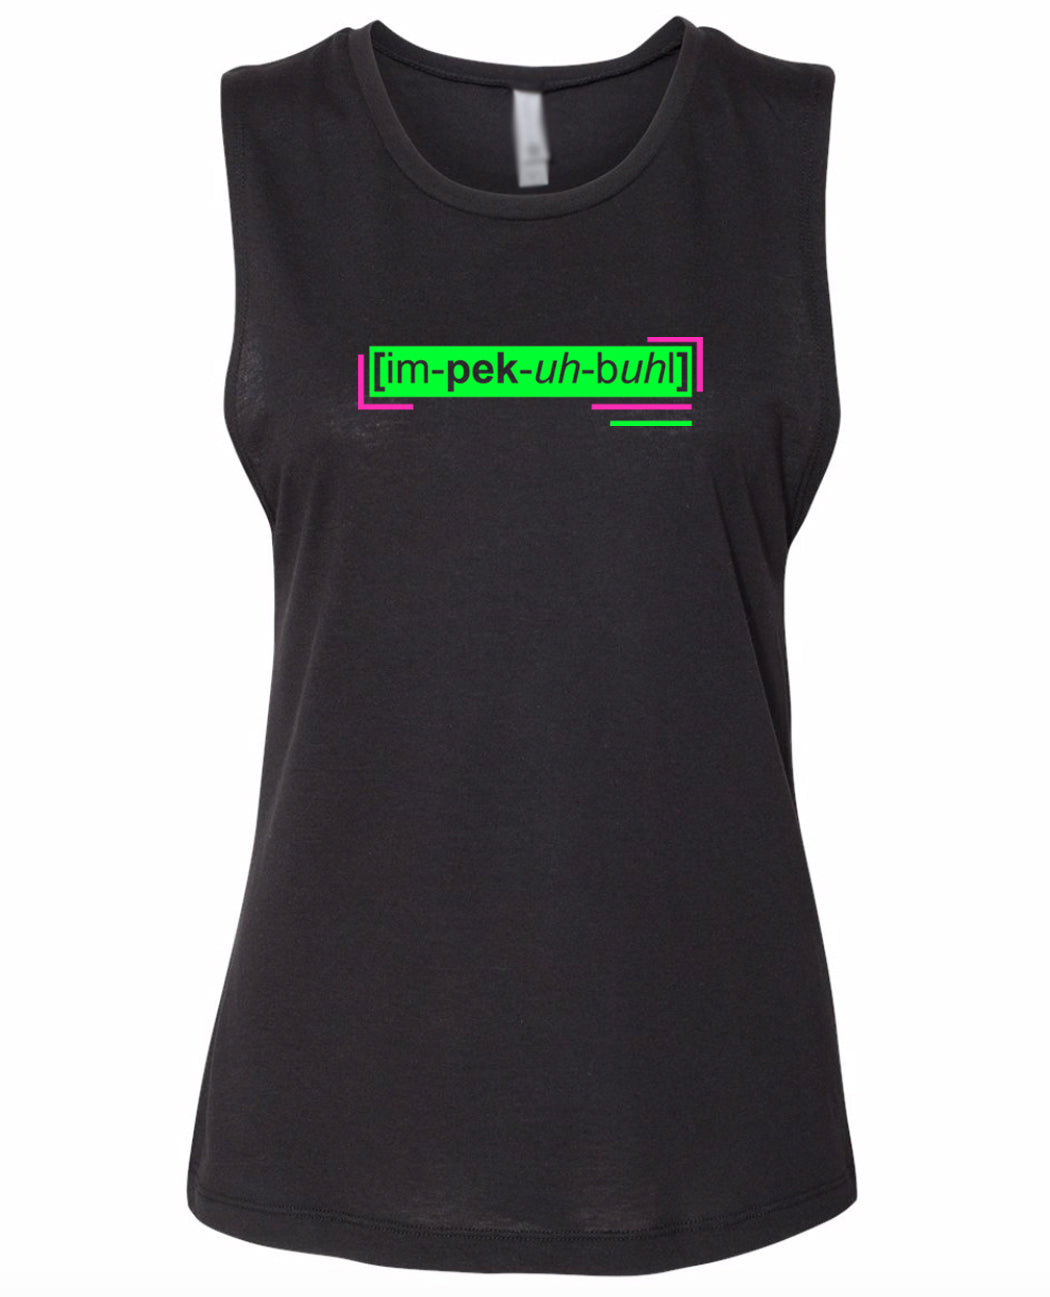 florescent green impeccable neon streetwear tank top for women